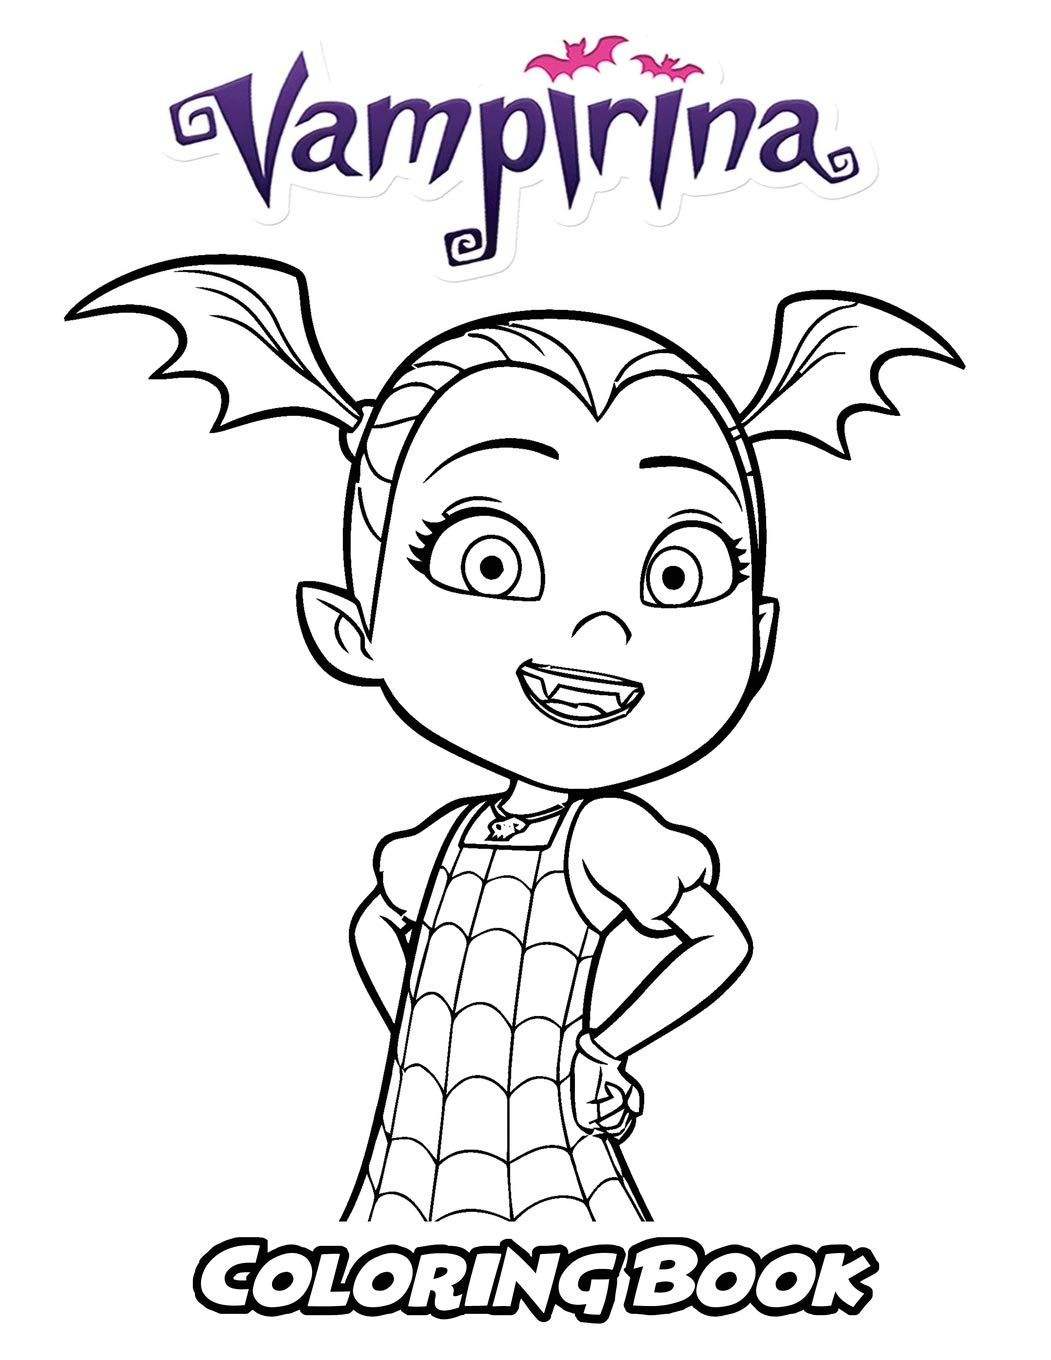 Vampirina coloring book coloring book for kids and adults activity book with fun easy and relaxing coloring pages perfect for children ages 3 5 6 8